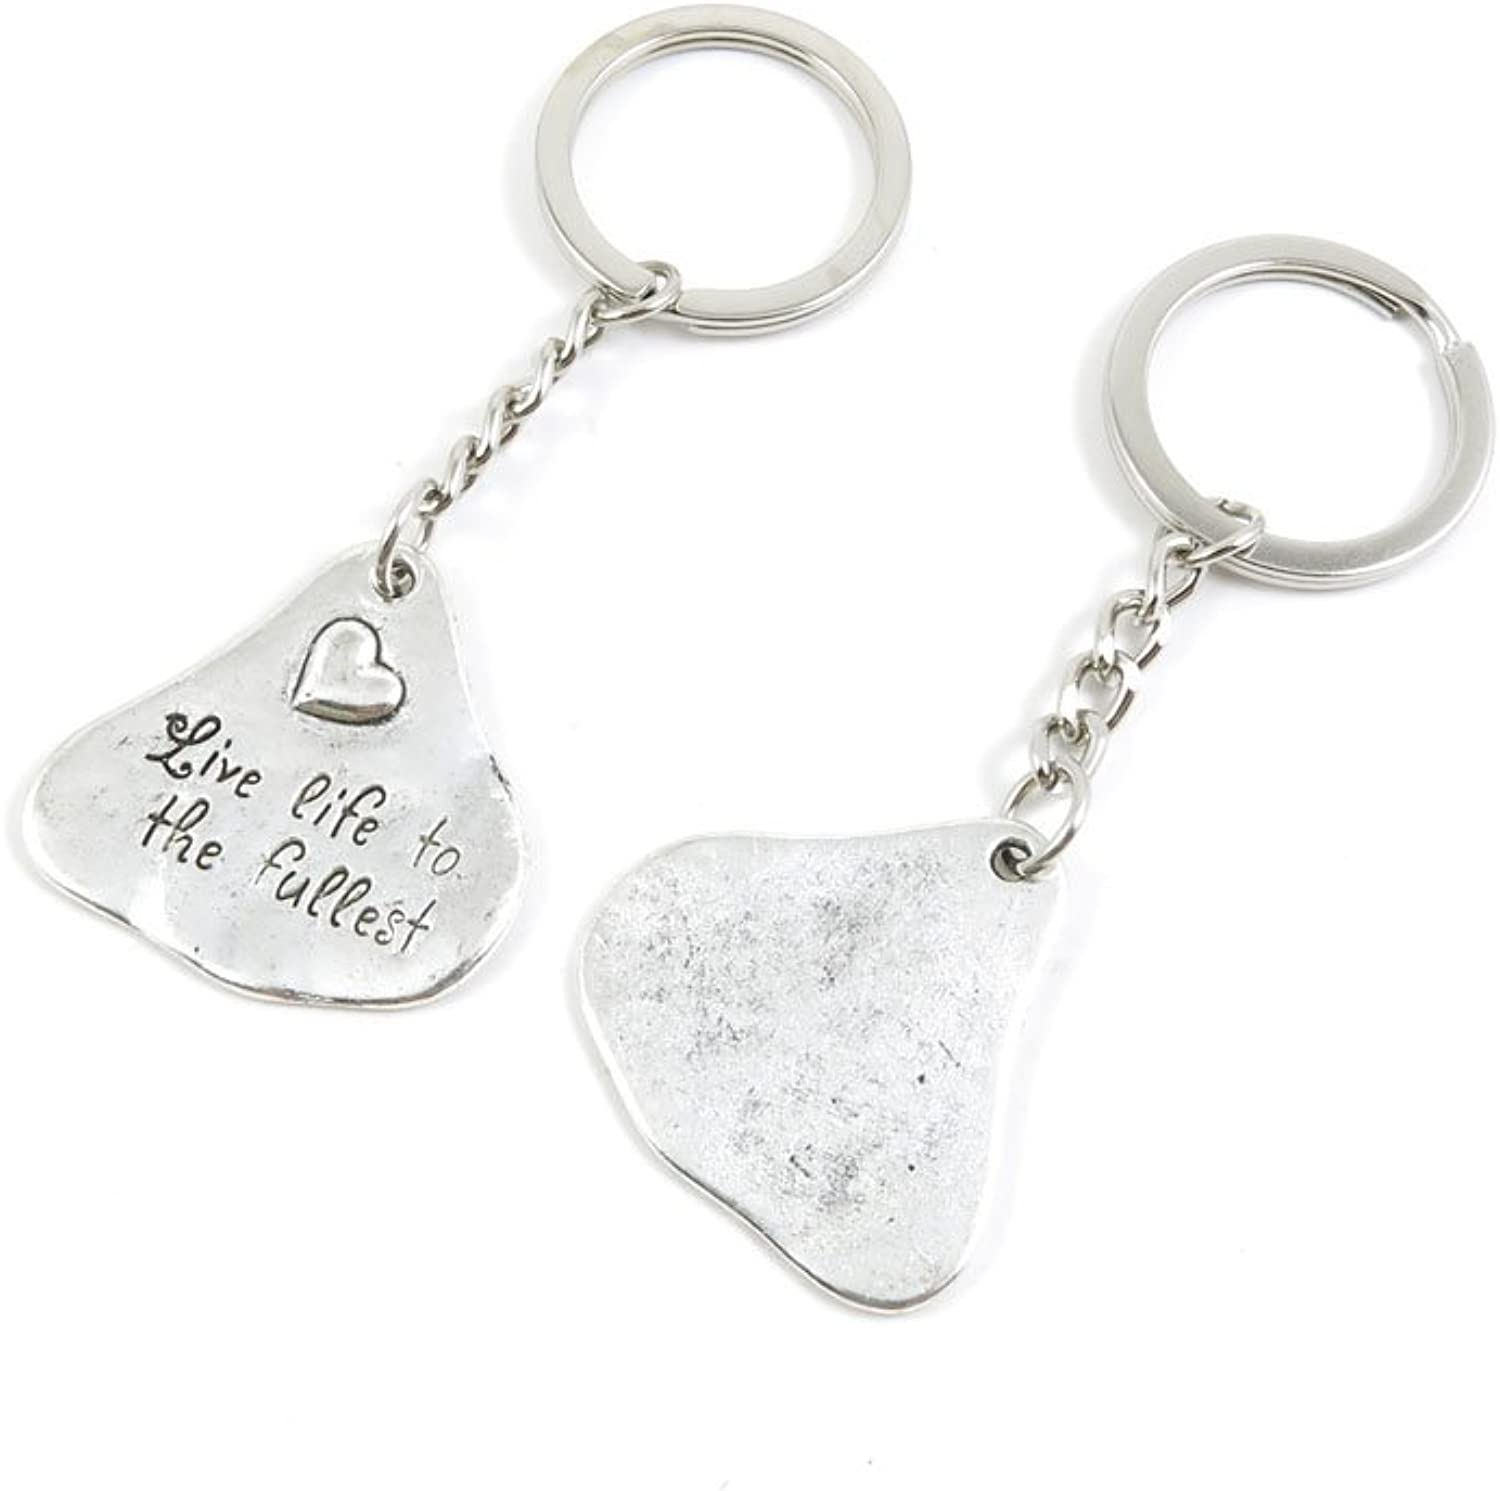 120 Pieces Fashion Jewelry Keyring Keychain Door Car Key Tag Ring Chain Supplier Supply Wholesale Bulk Lots T6TF4 Heart Signs Tag